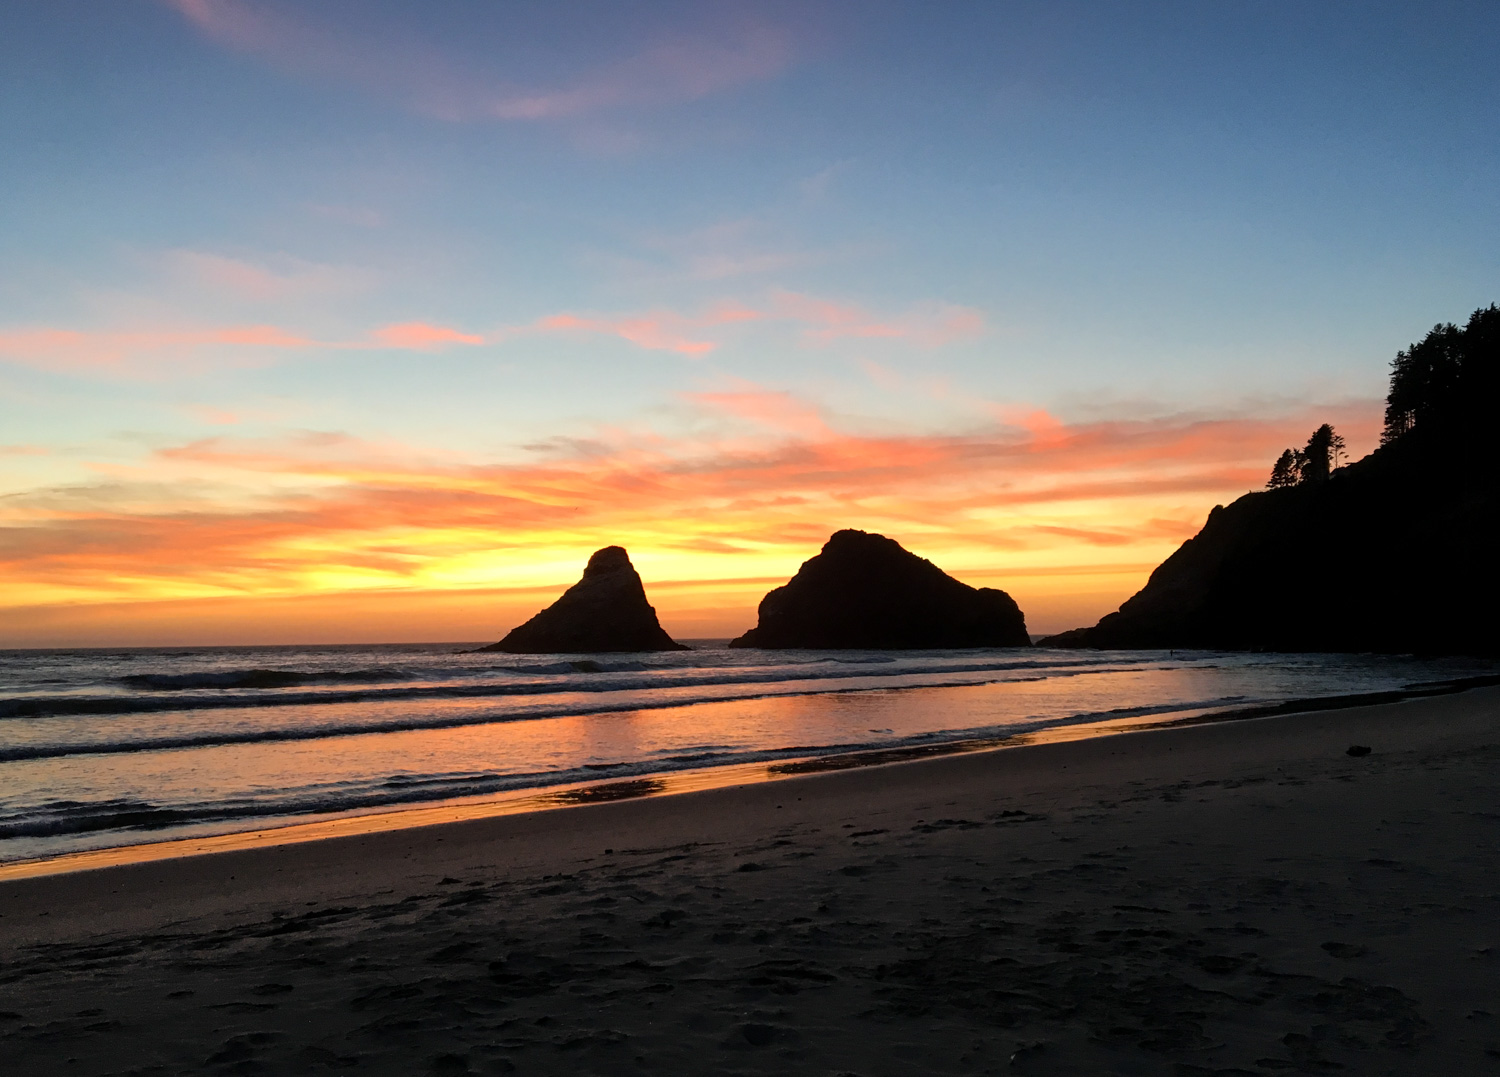 The Gorgeous Sunset from Heceta Head Viewpoint